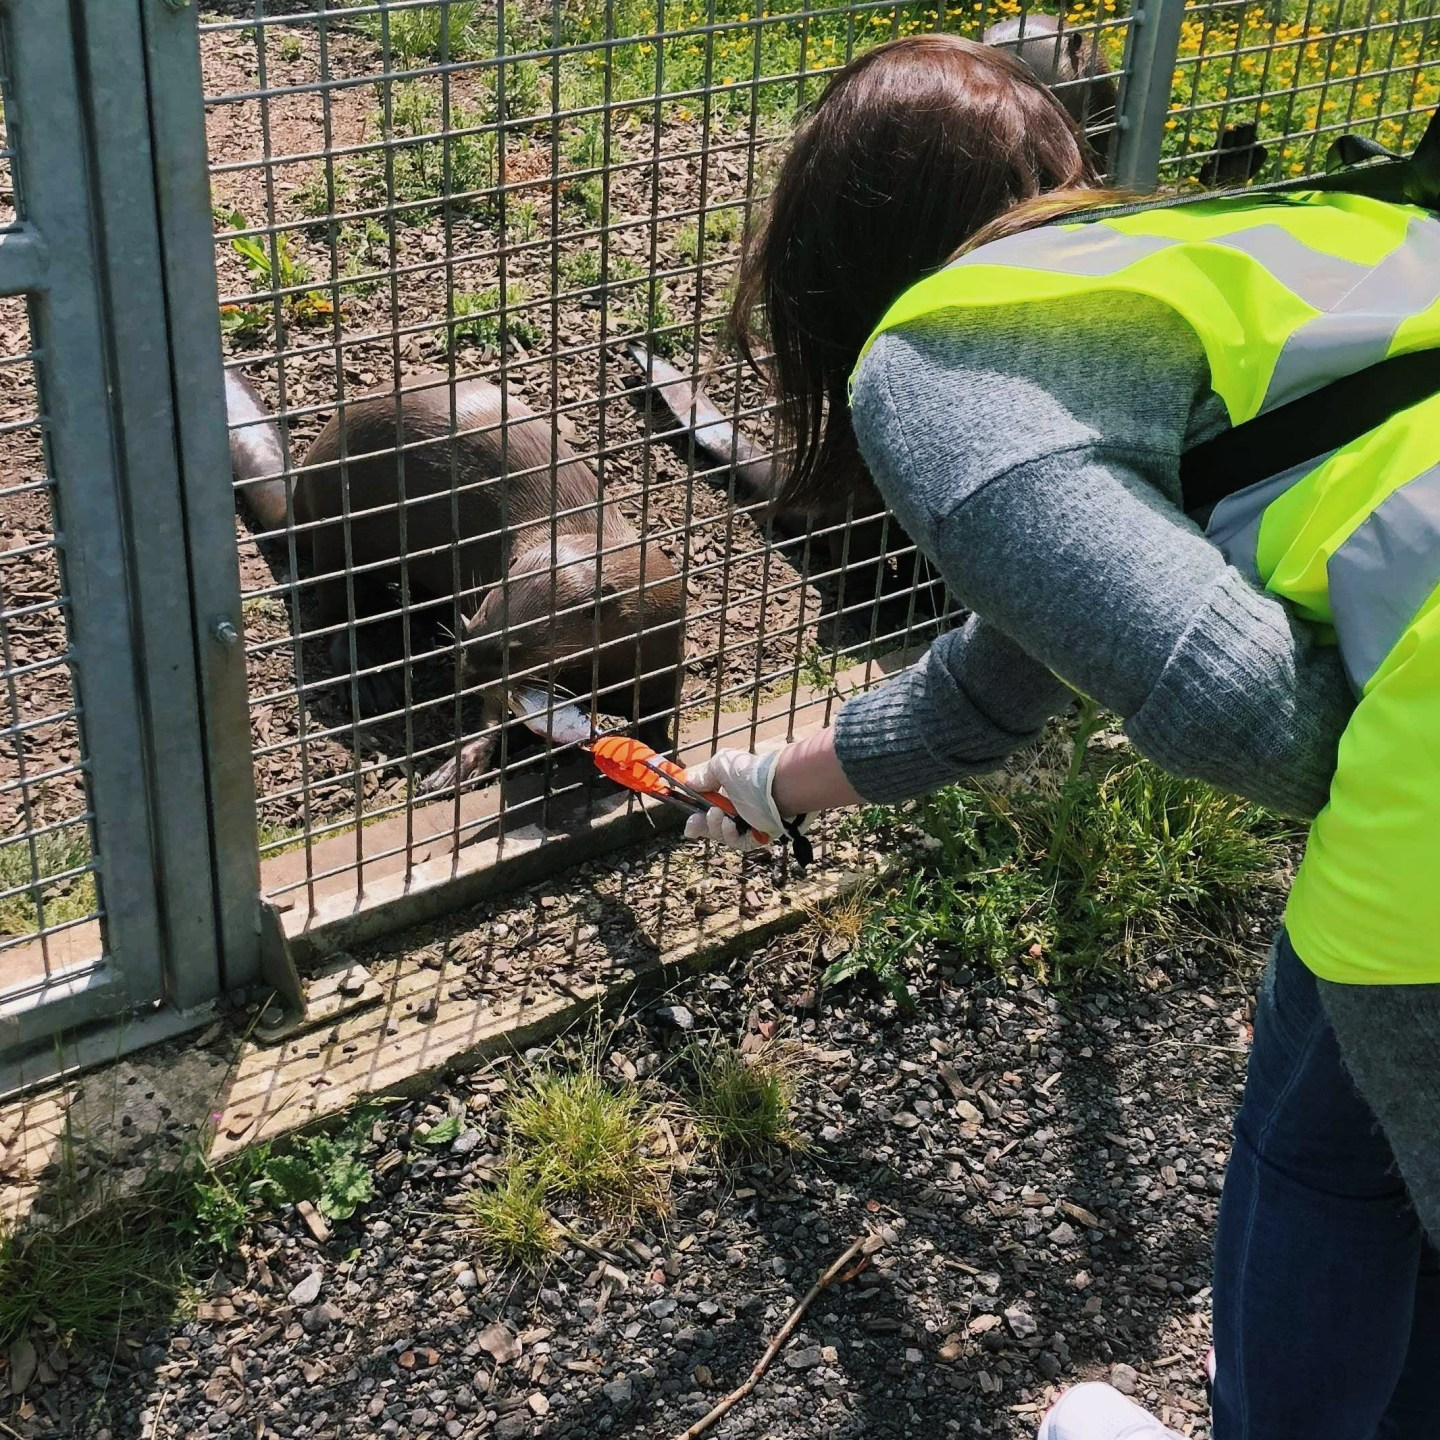 Yorkshire Wildlife Park VIP Experience Review